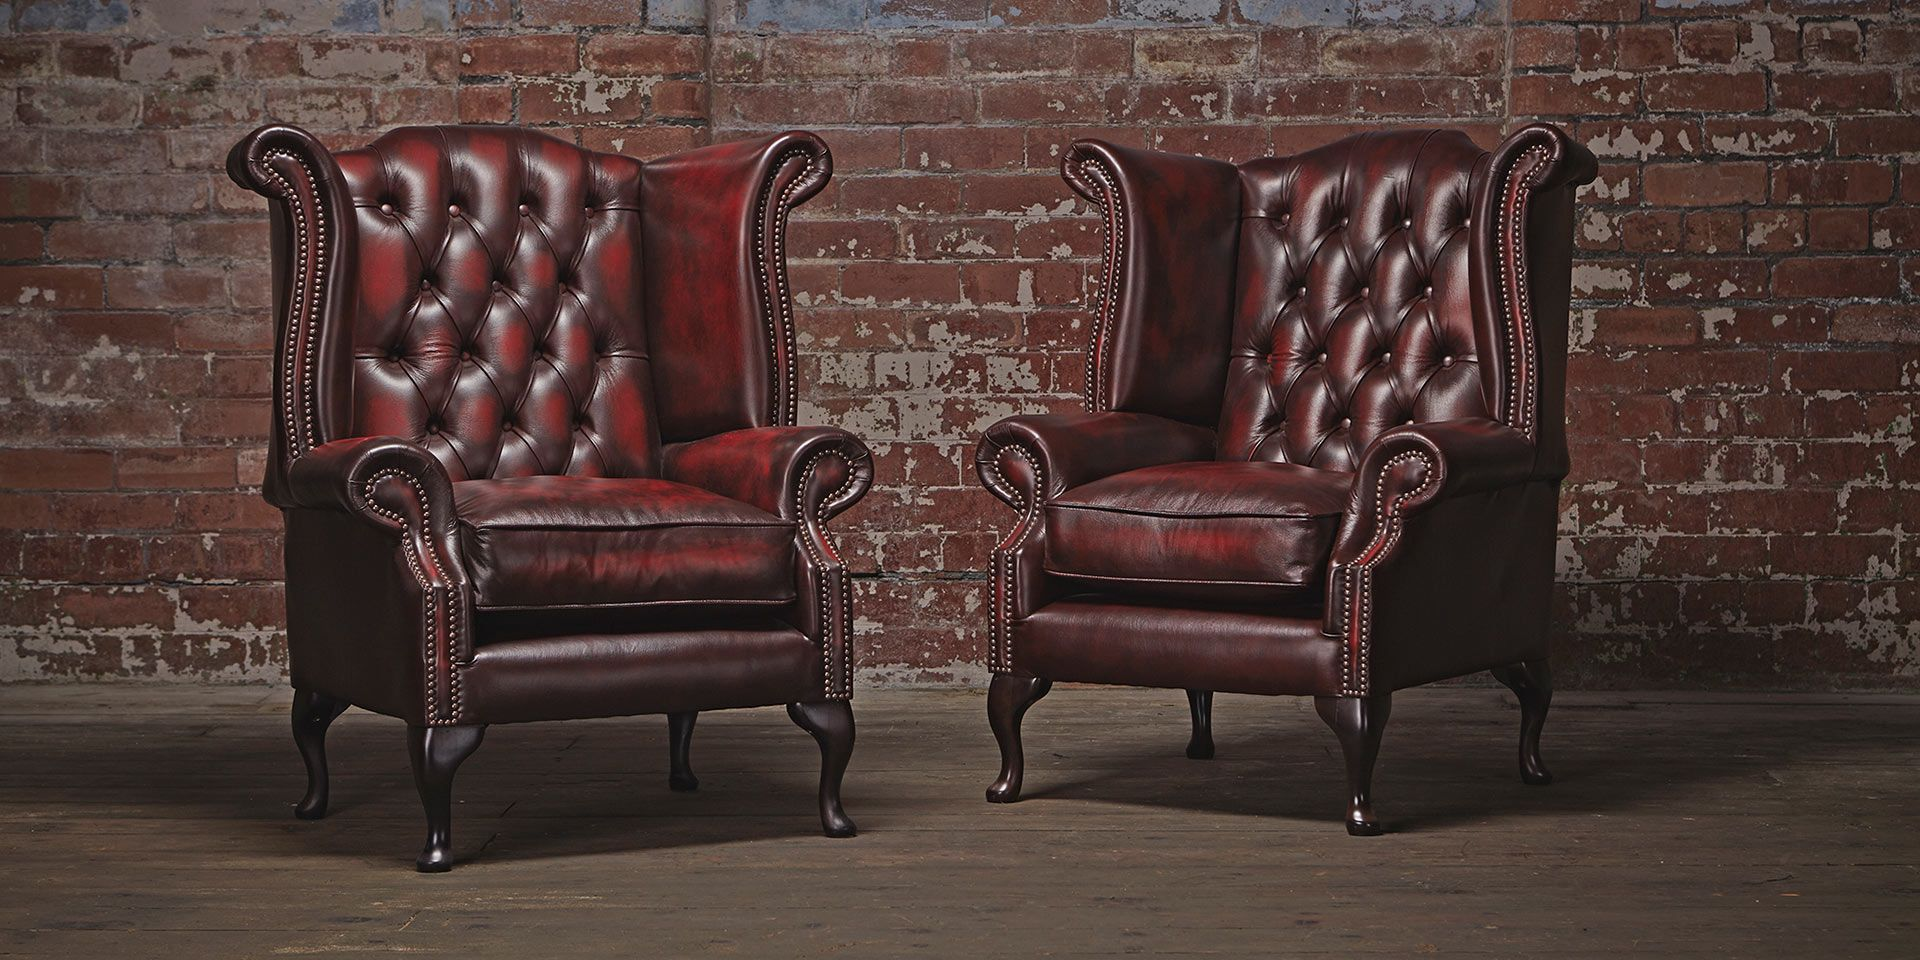 Chesterfields of London Queen Anne Chair Interior Design